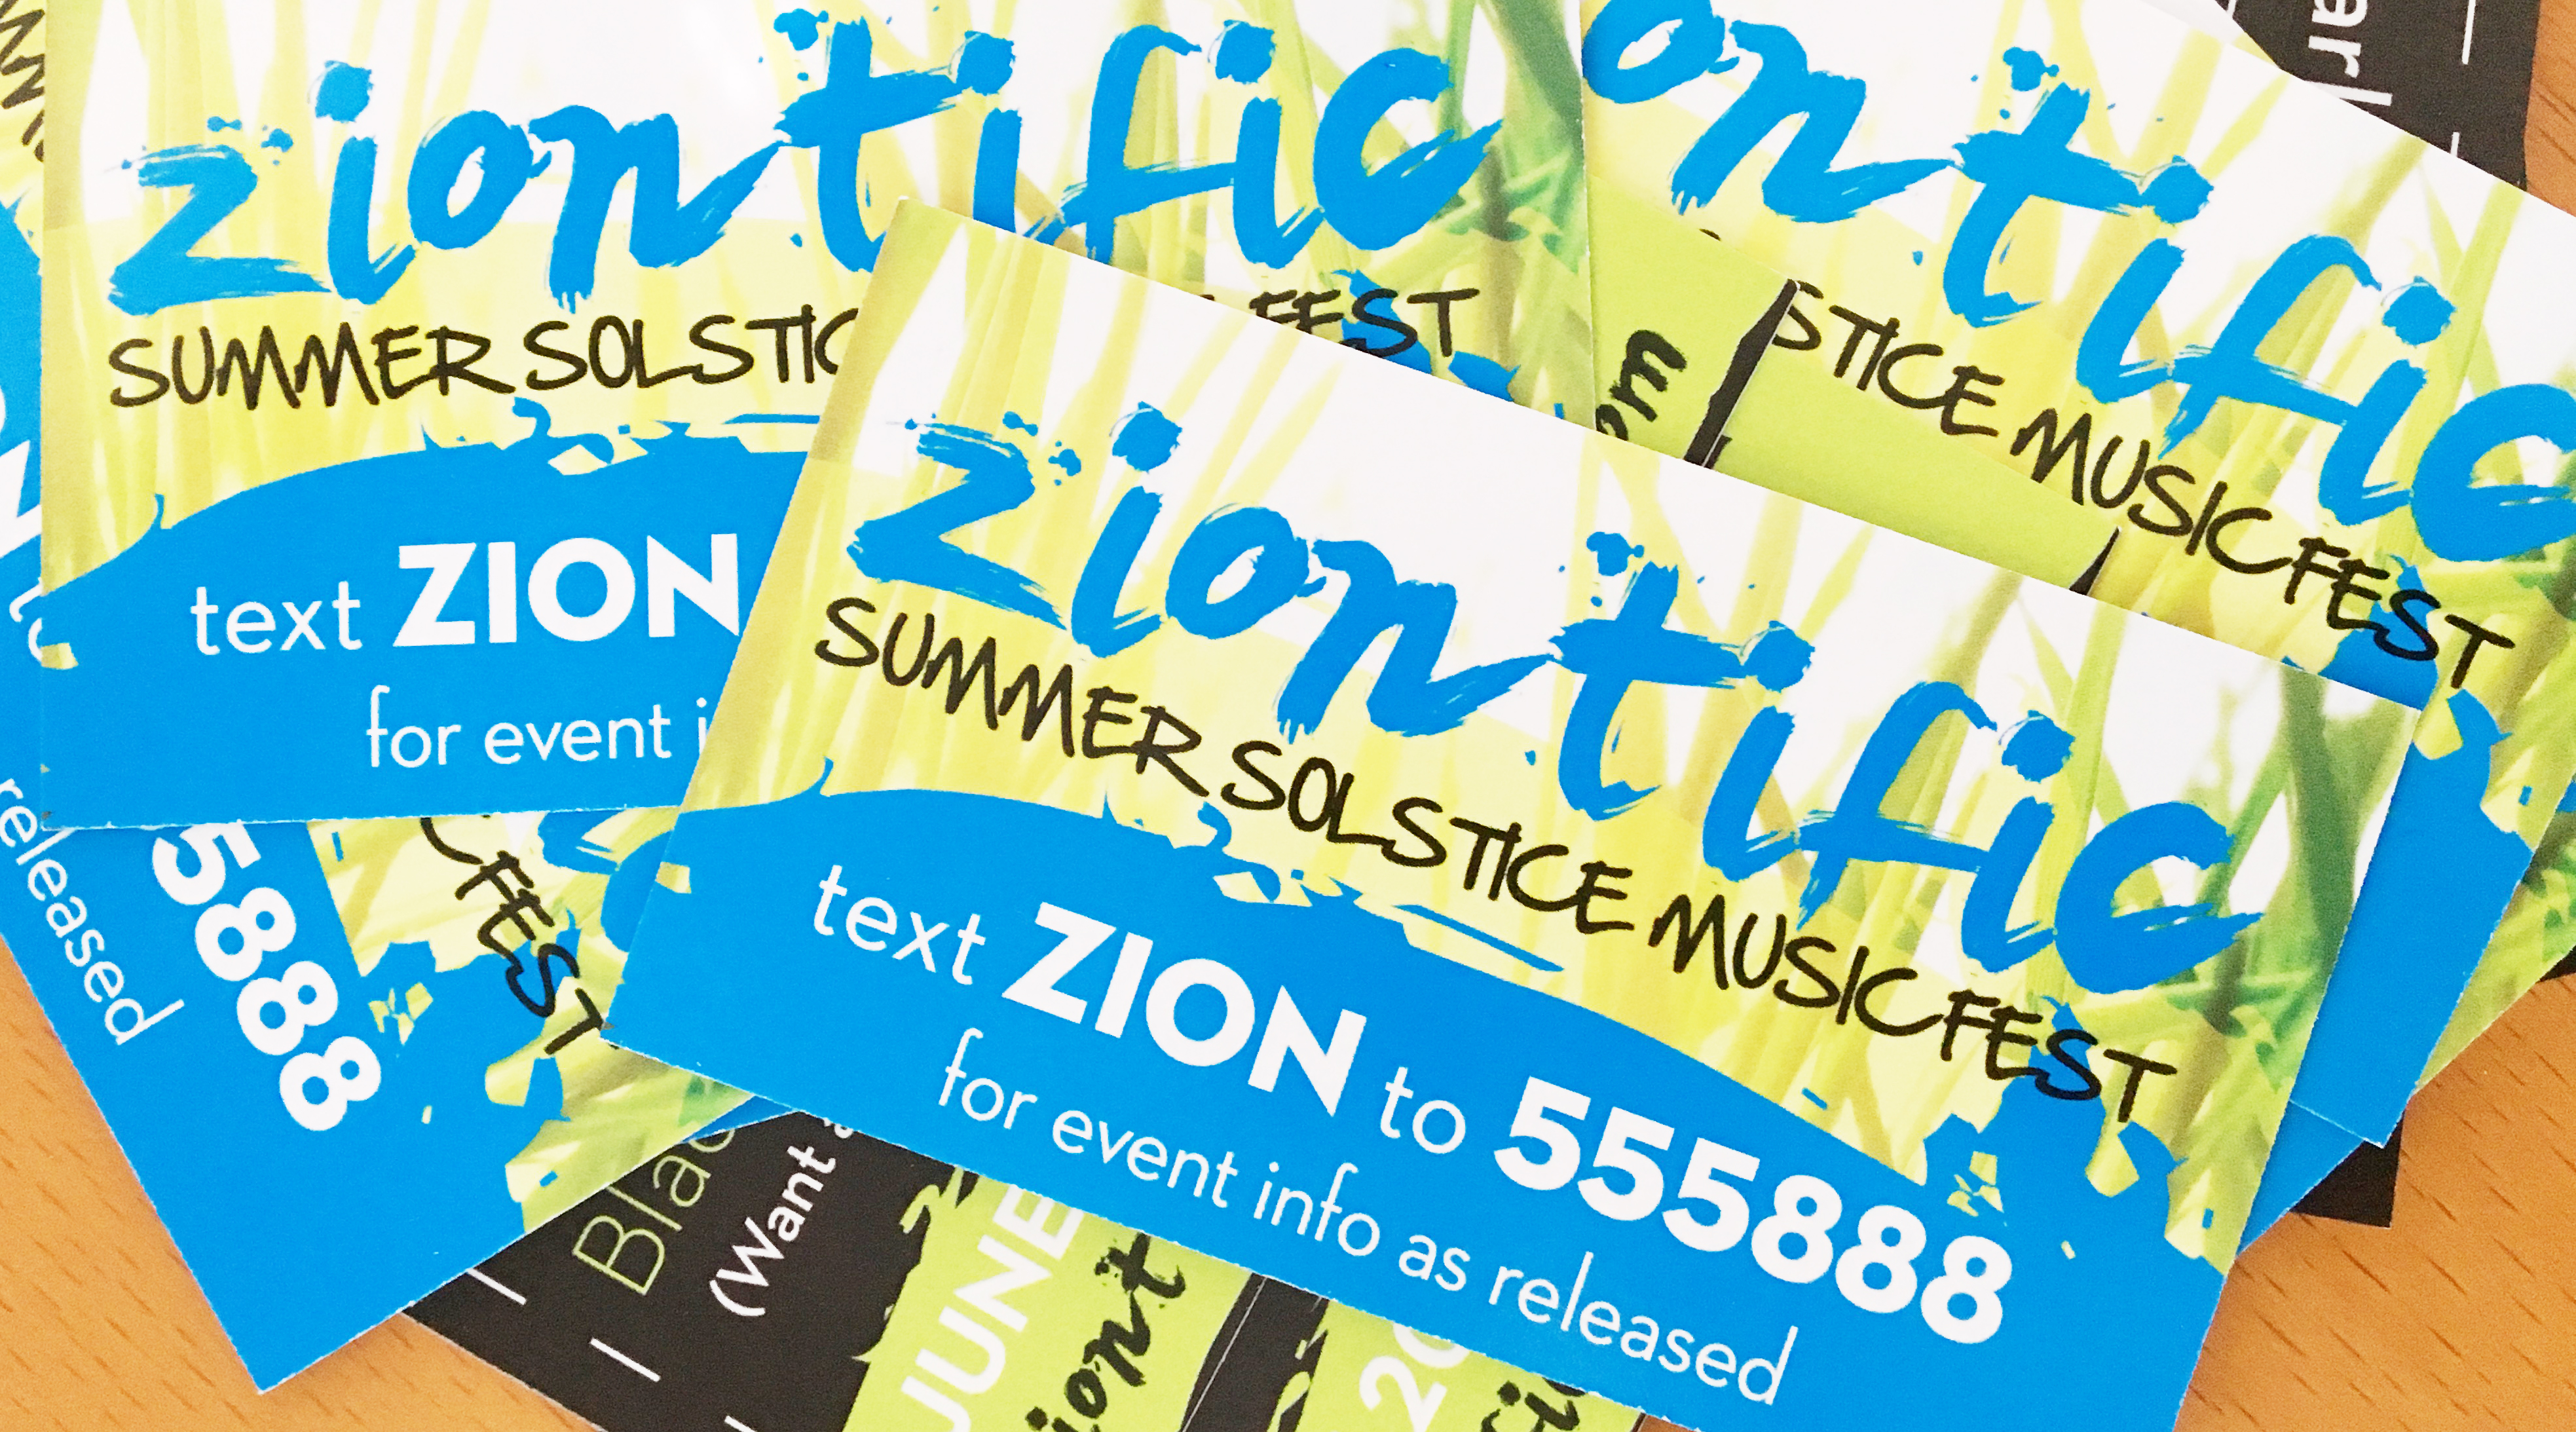 Text ZION to 555888